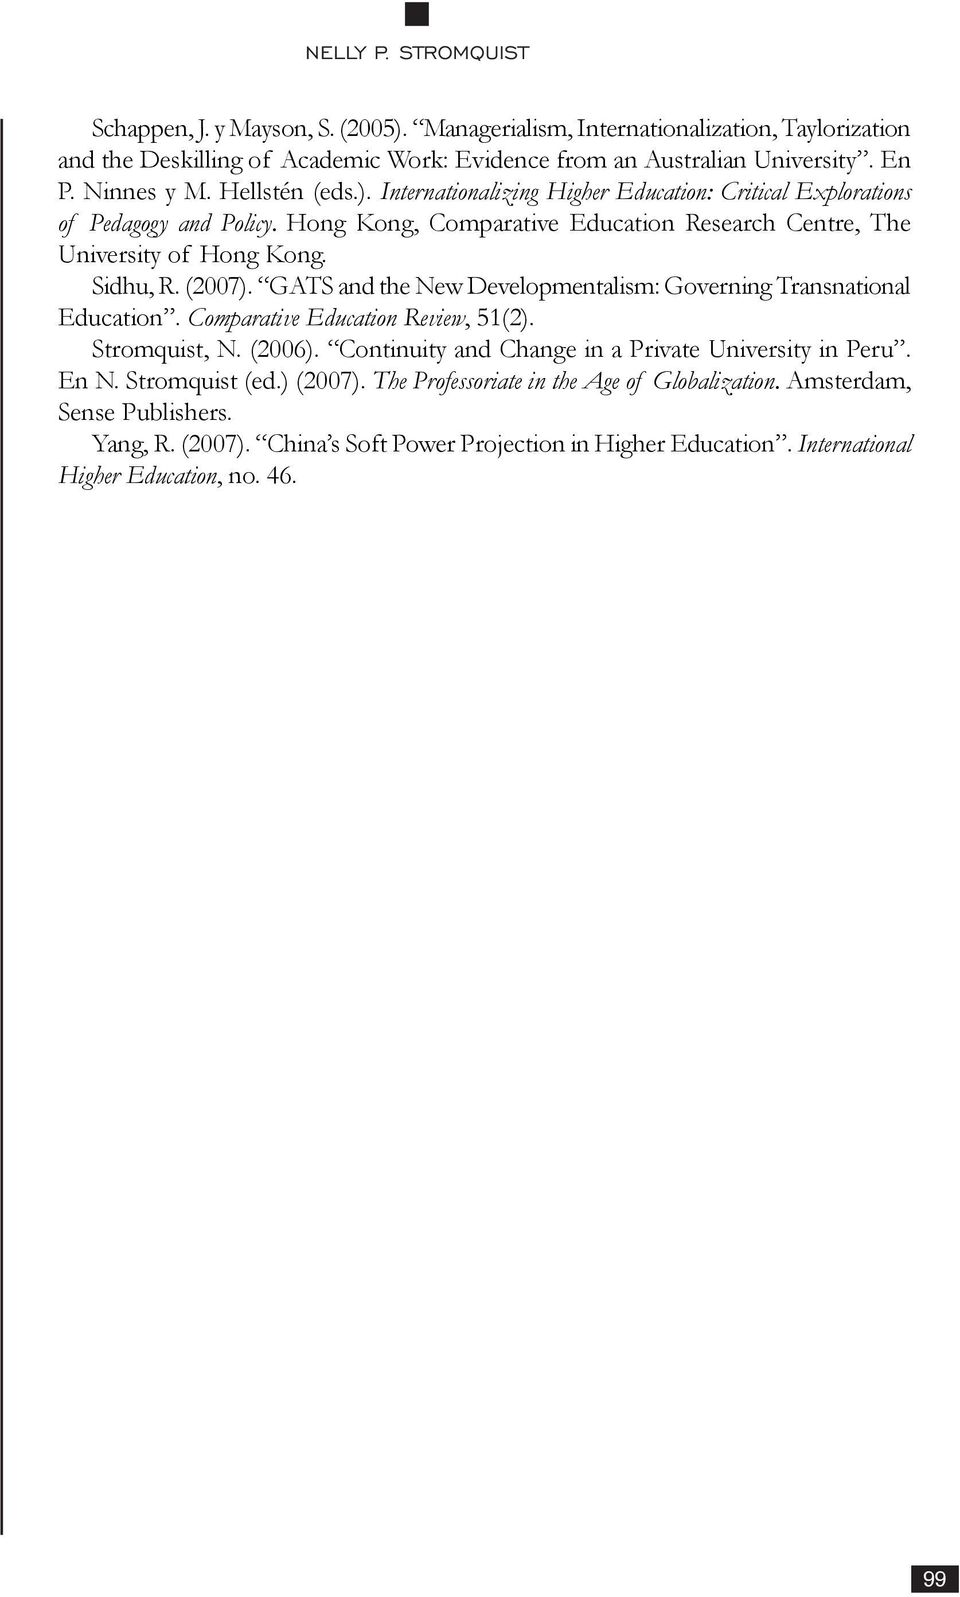 GATS and the New Developmentalism: Governing Transnational Education. Comparative Education Review, 51(2). Stromquist, N. (2006). Continuity and Change in a Private University in Peru. En N.